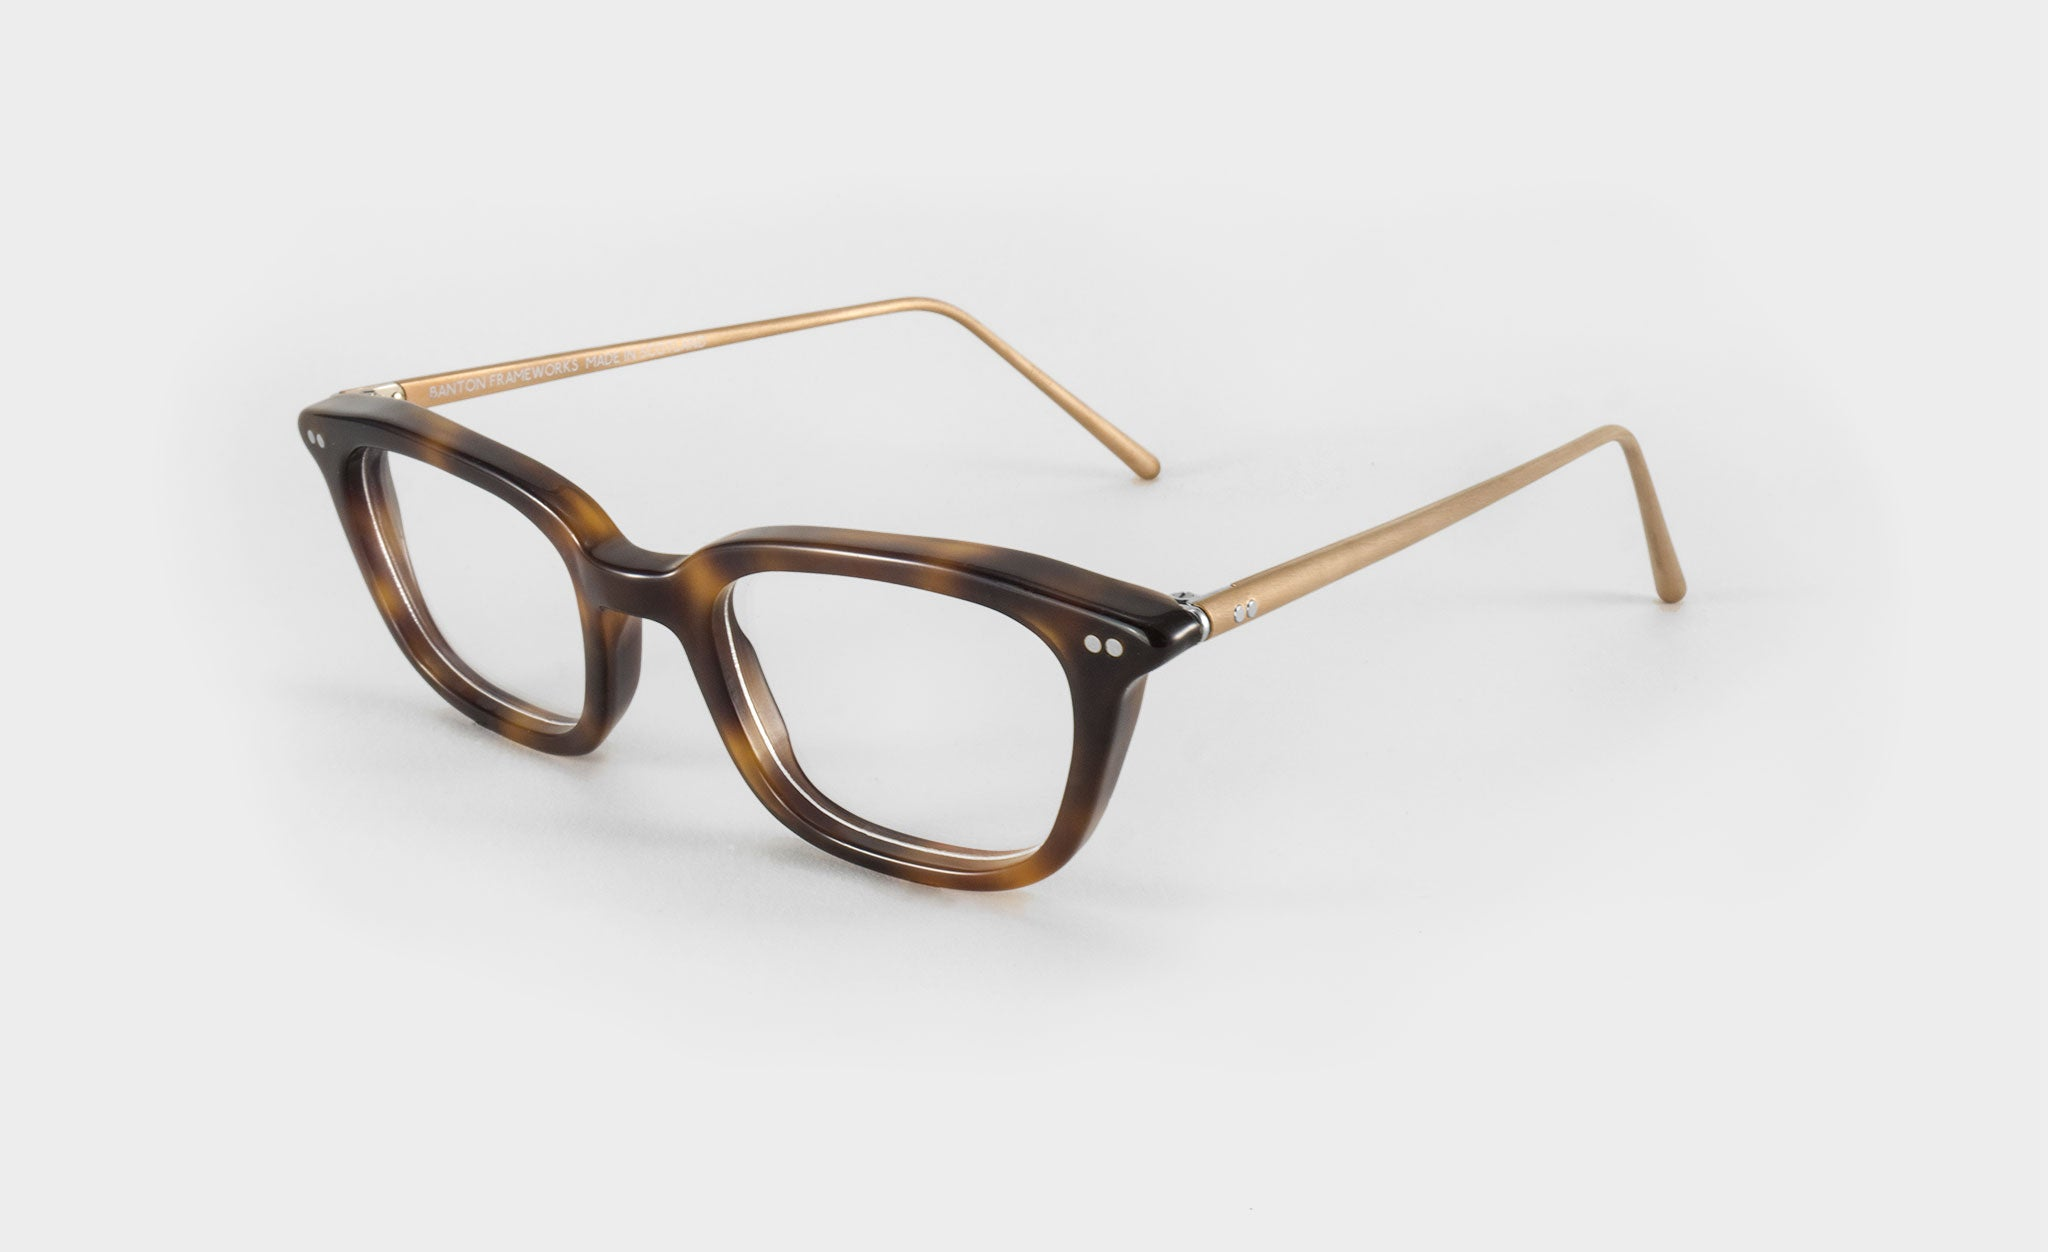 Womens Tortoise Shell Rectangle Glasses Frame side view